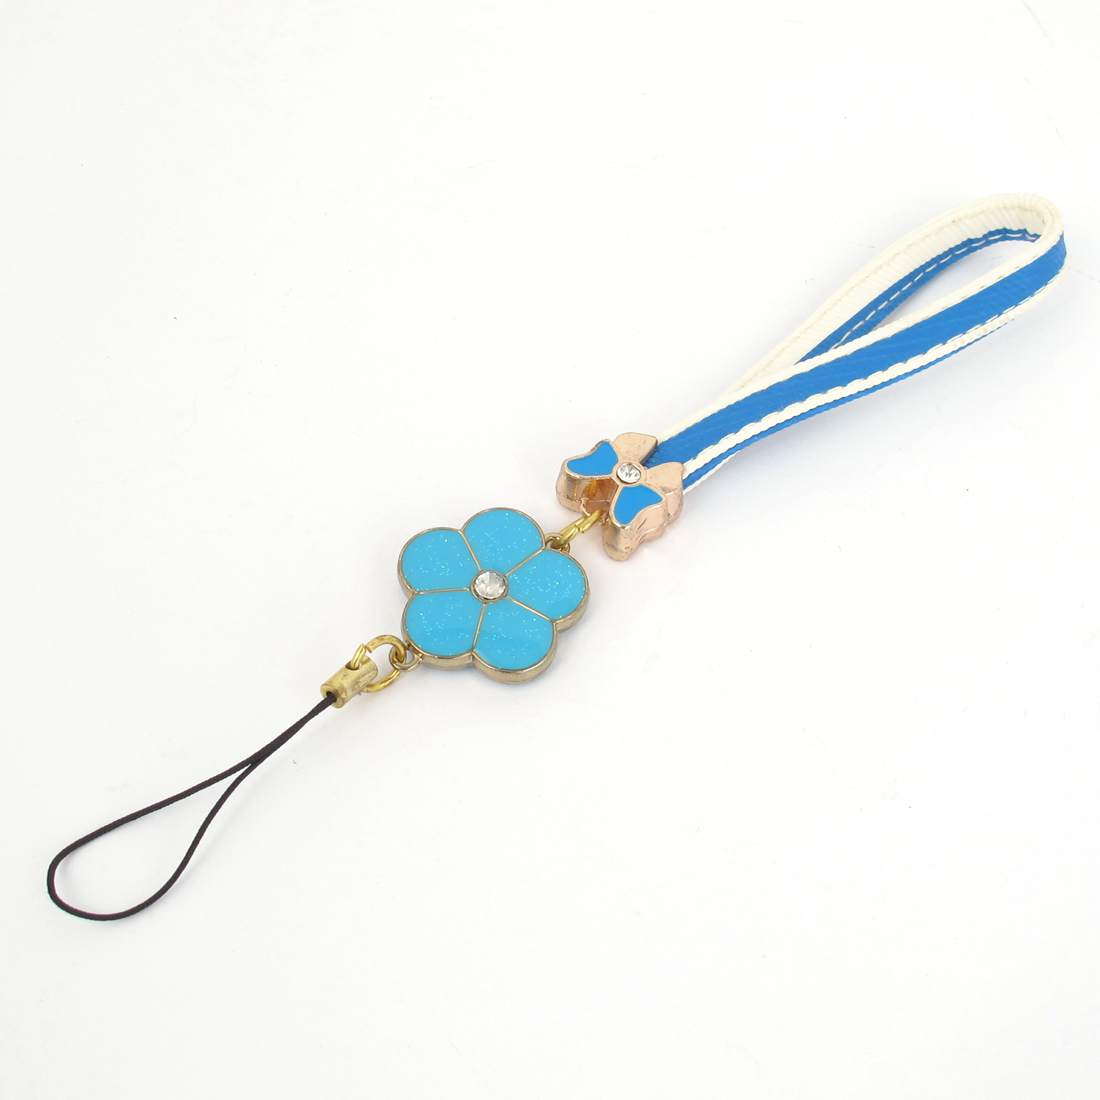 Blue Clover Pendant Wrist Strap Lanyard for Camera Cell Phone USB Mp3 Mp4